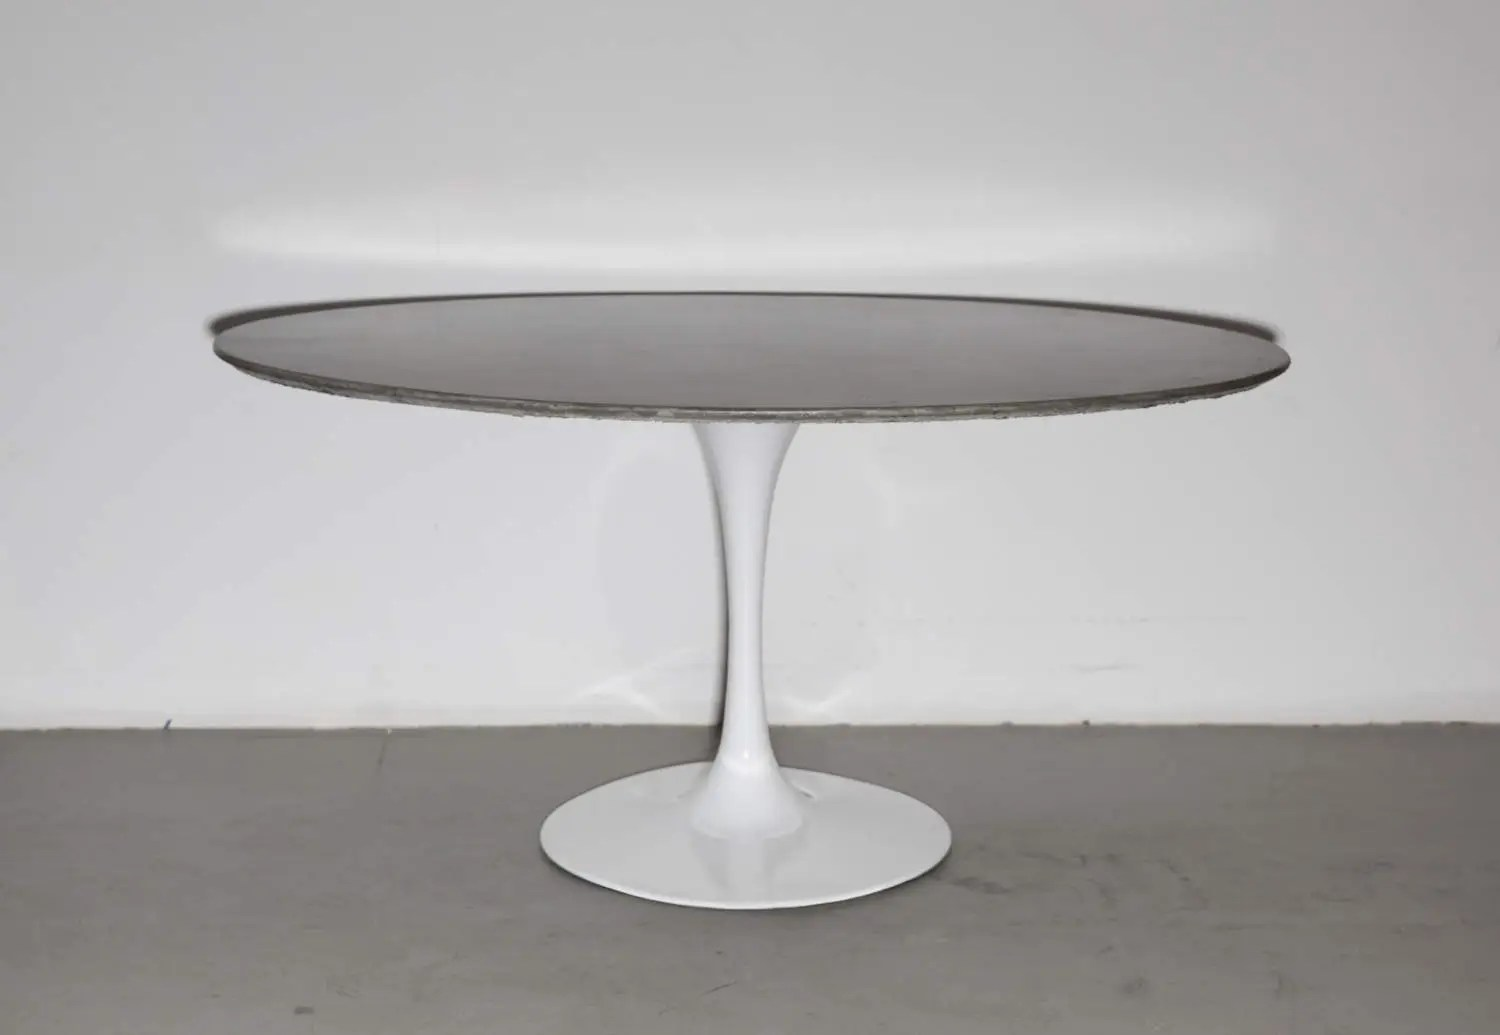 Saarinen Knoll Table Concrete Table Mid Century Dining Table Oval Table For 6 Tulip Base Contemporary Mid Century Modern Minimalist Furniture Saarinen Knoll Like